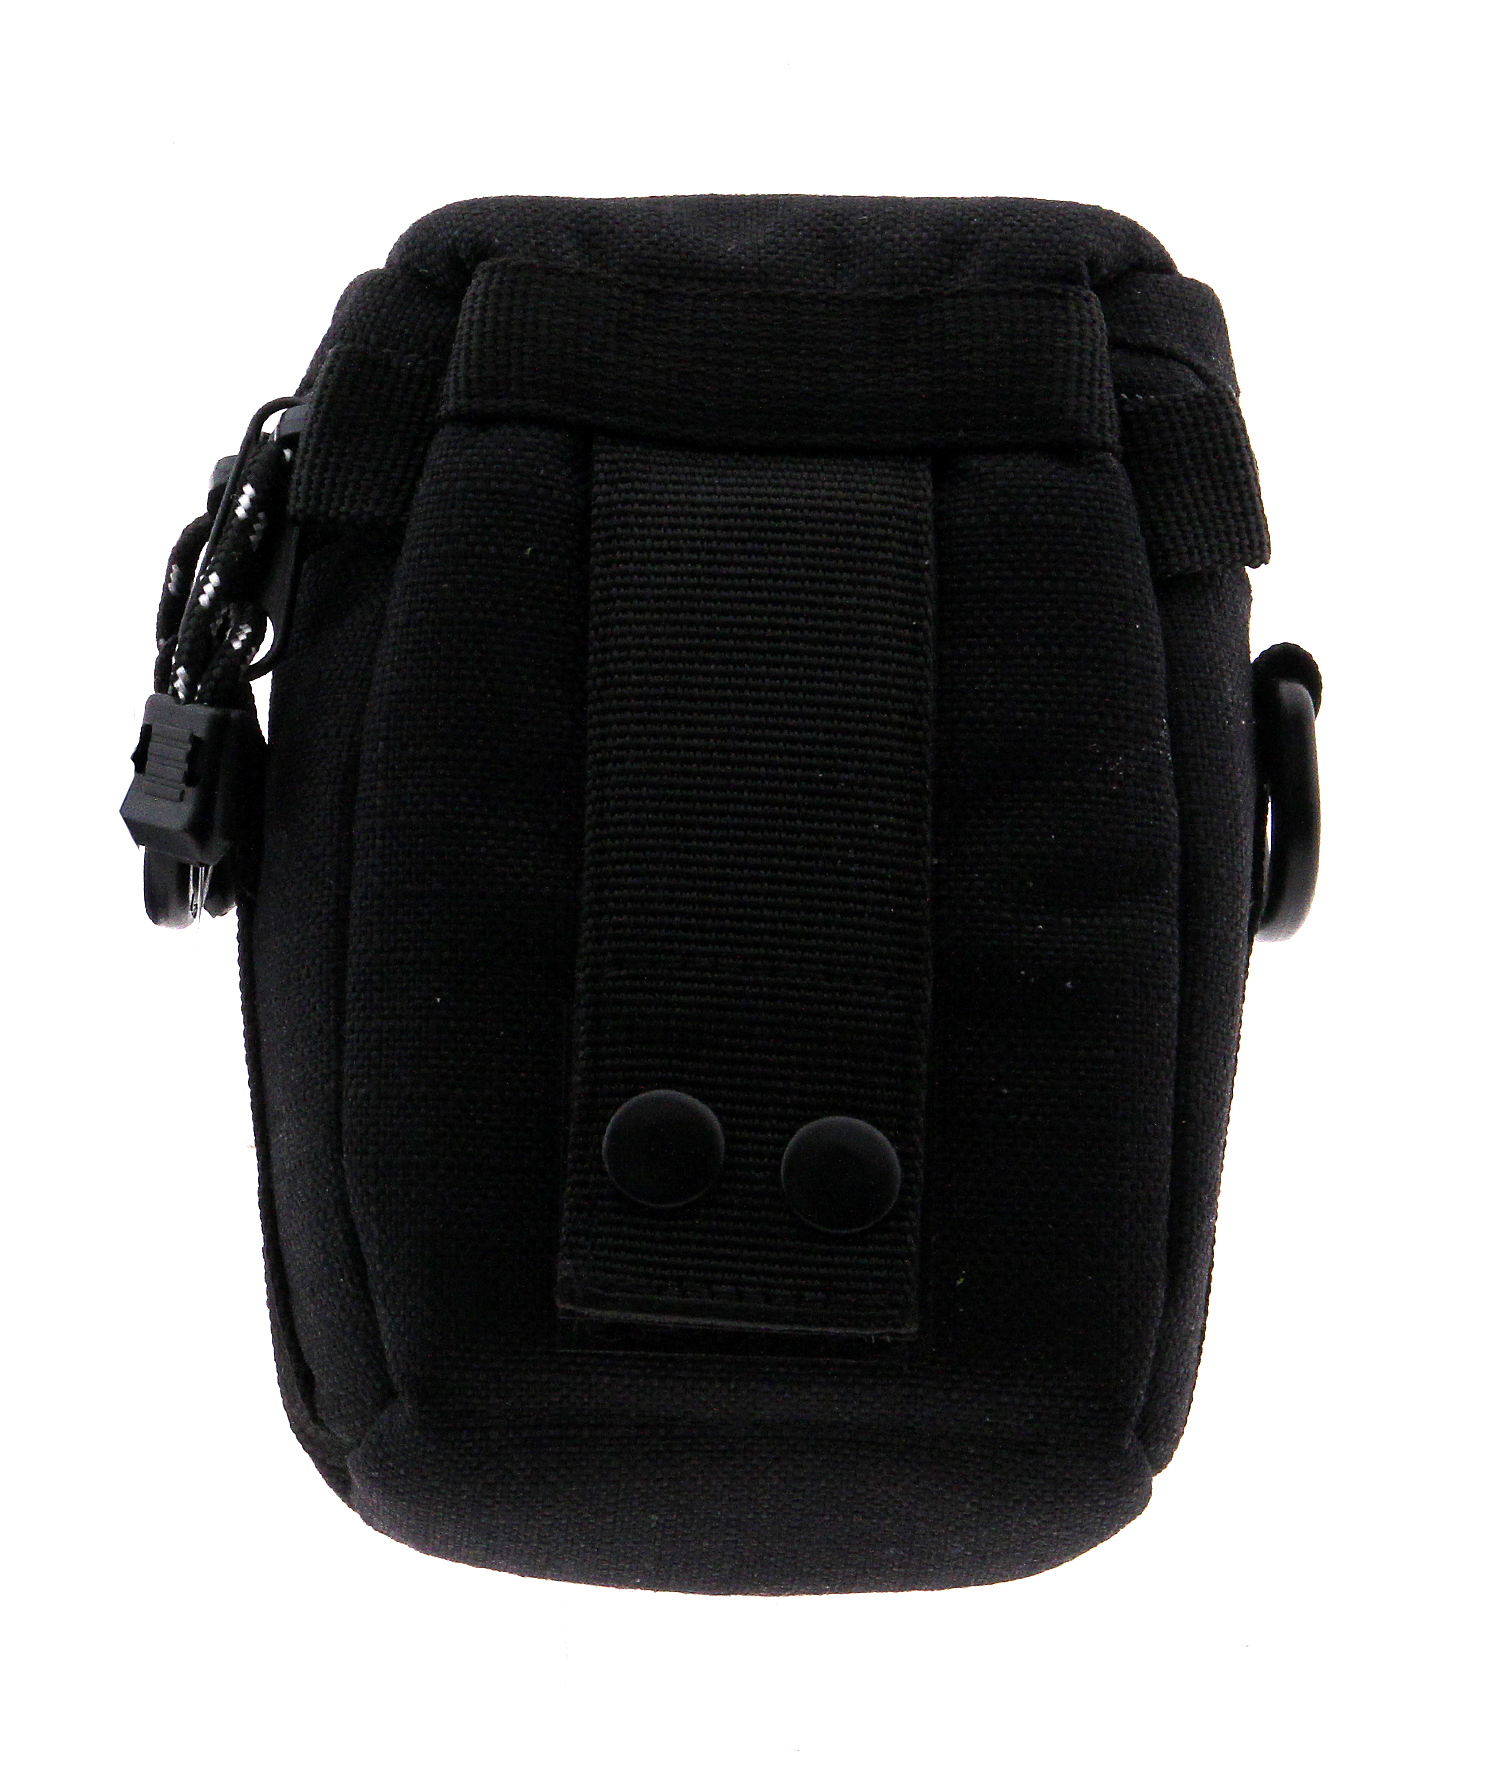 Medium Lens Pouch PSLP20 - Black